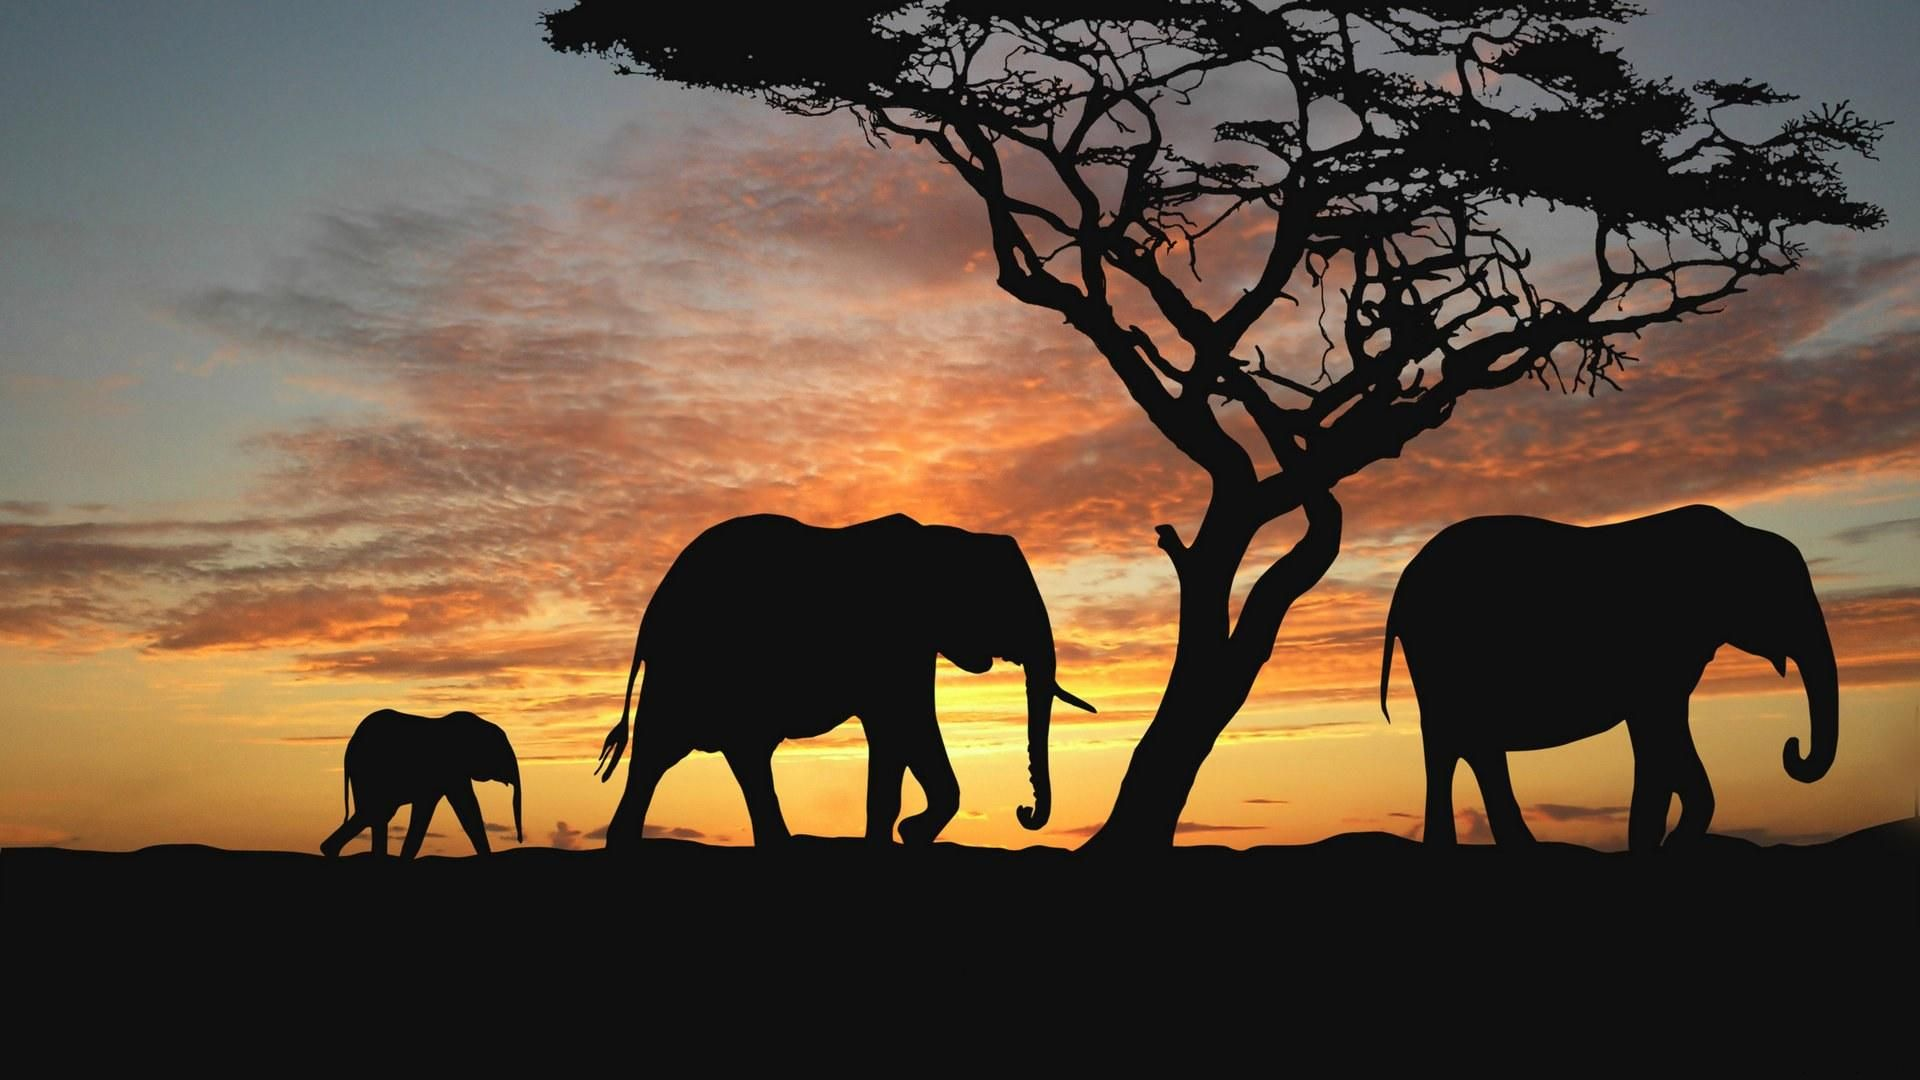 The Picture Elephant Safari At Sunset